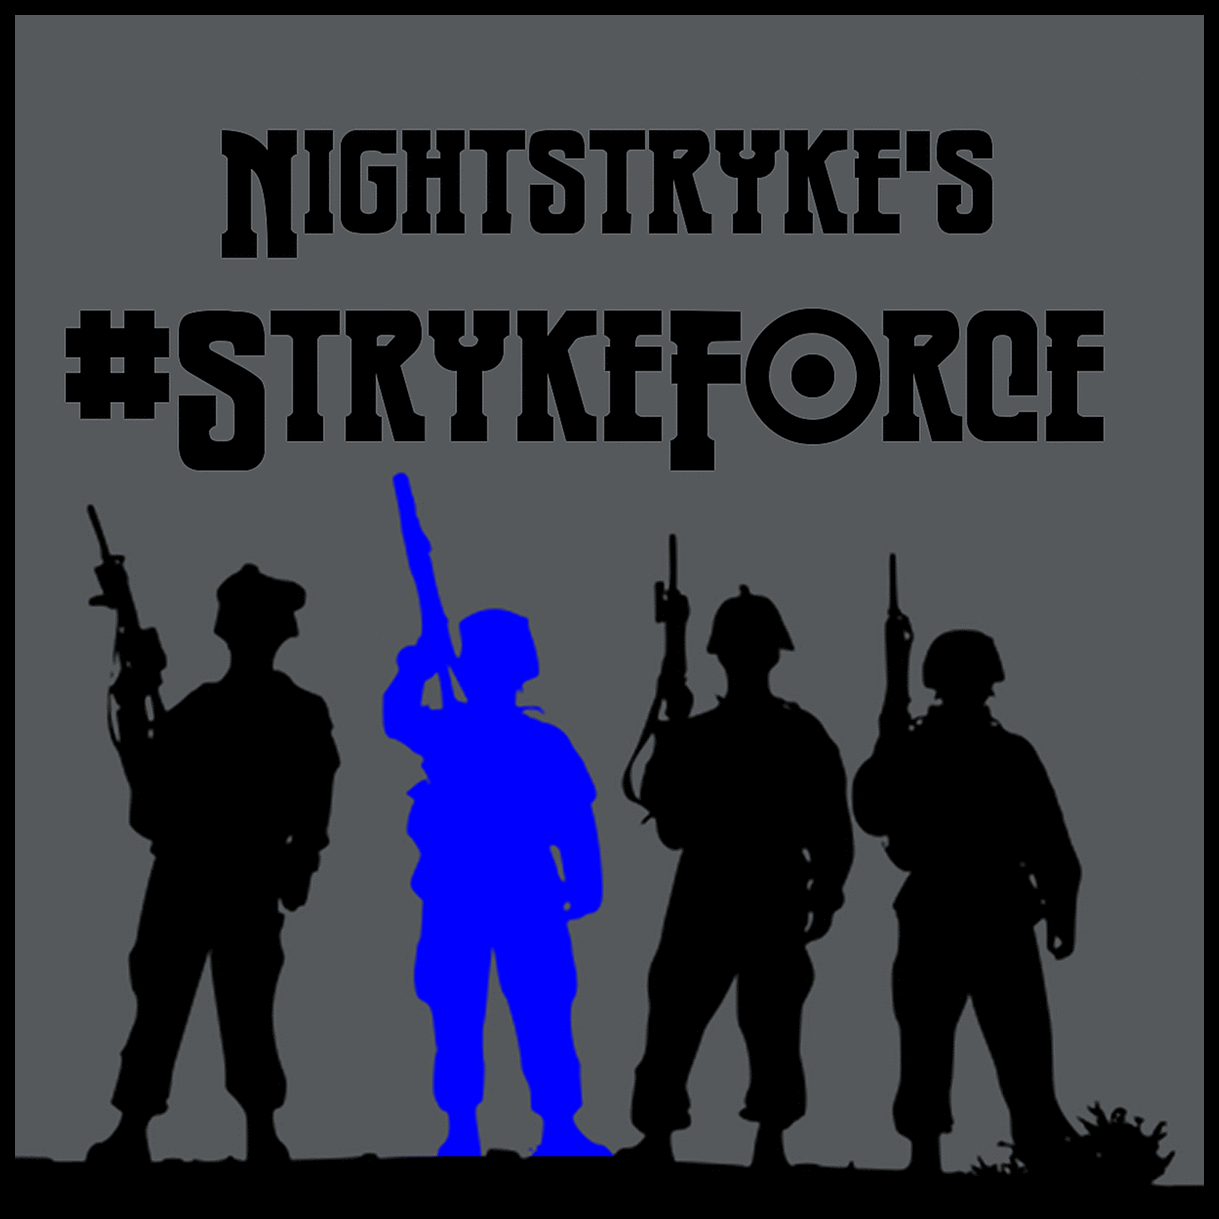 Buy a StrykeForce Sticker!